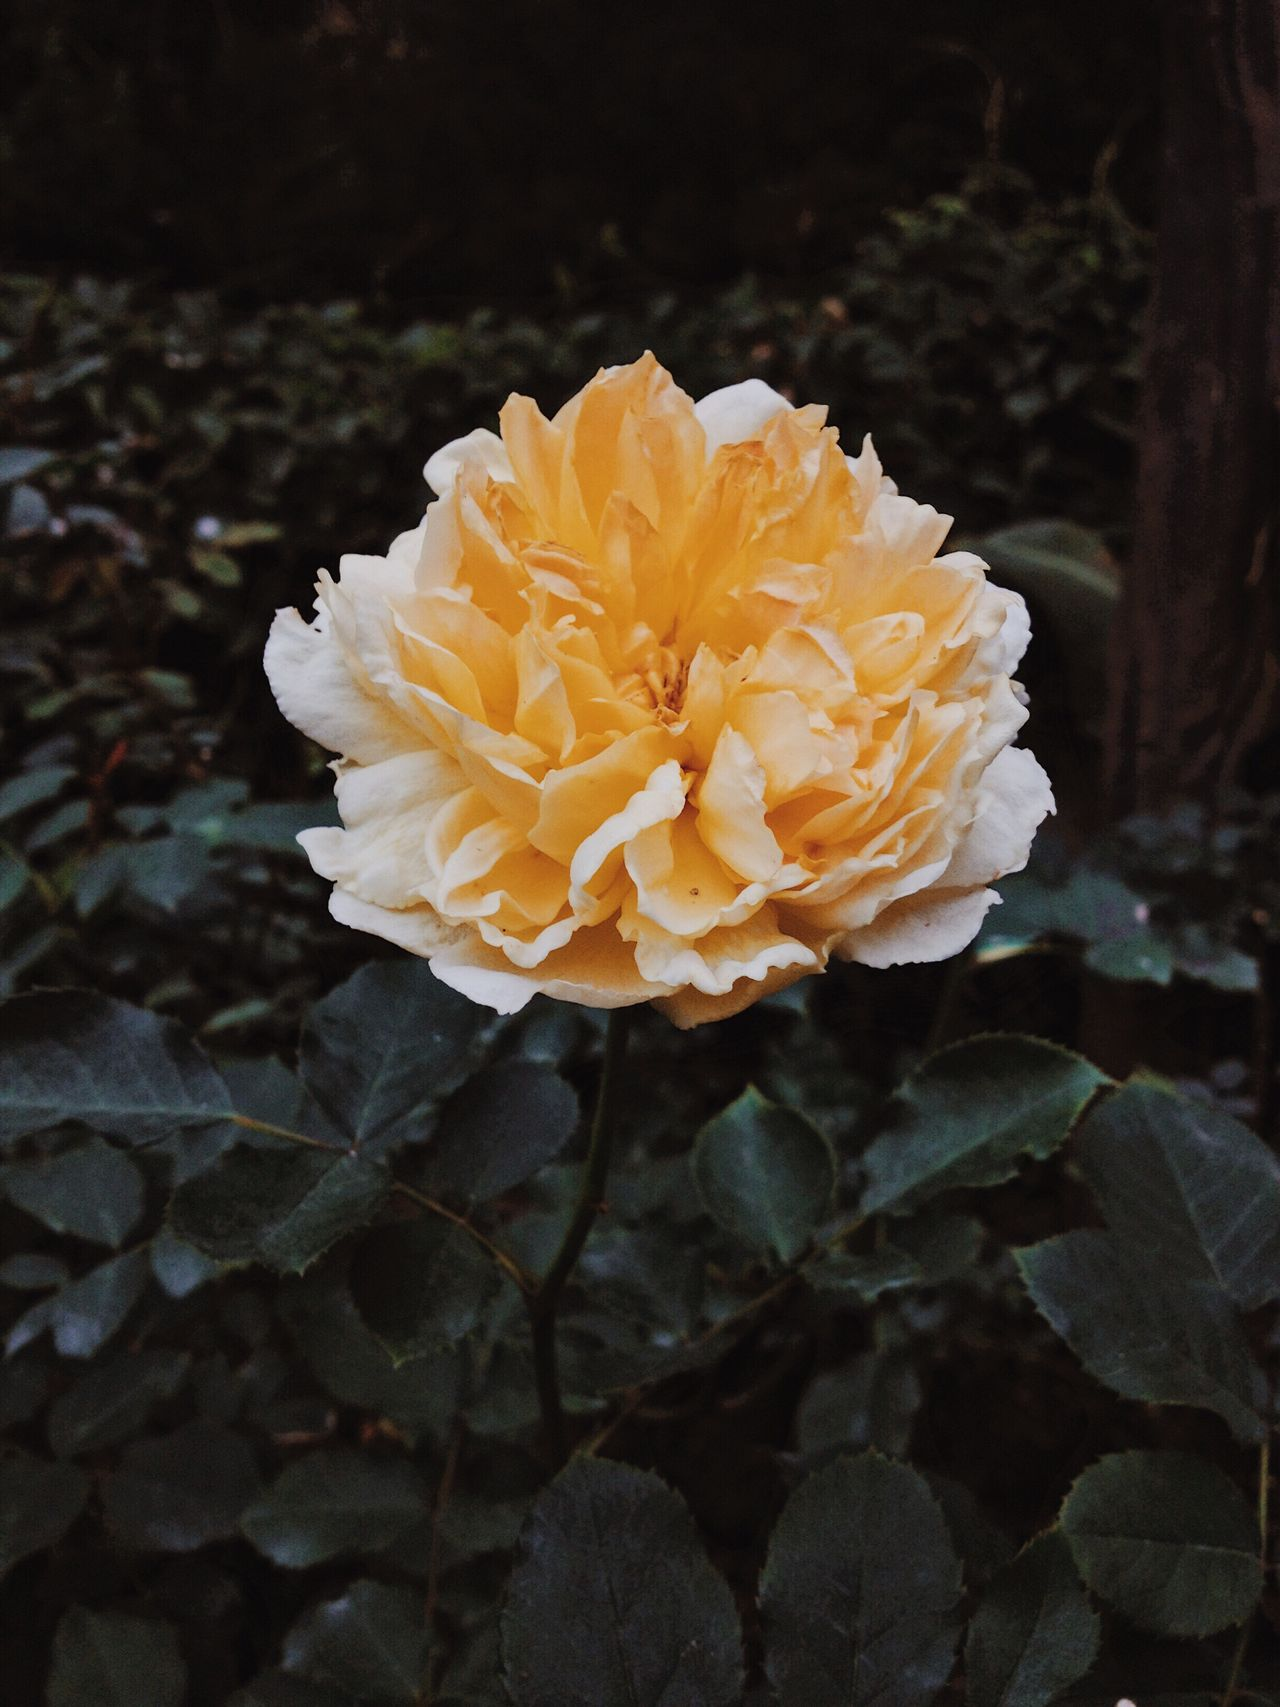 Roses Yellow Bloom Blossom Color Colorful Flower Garden Love Nature Plant Petal Romantic Fragility Close-up Freshness